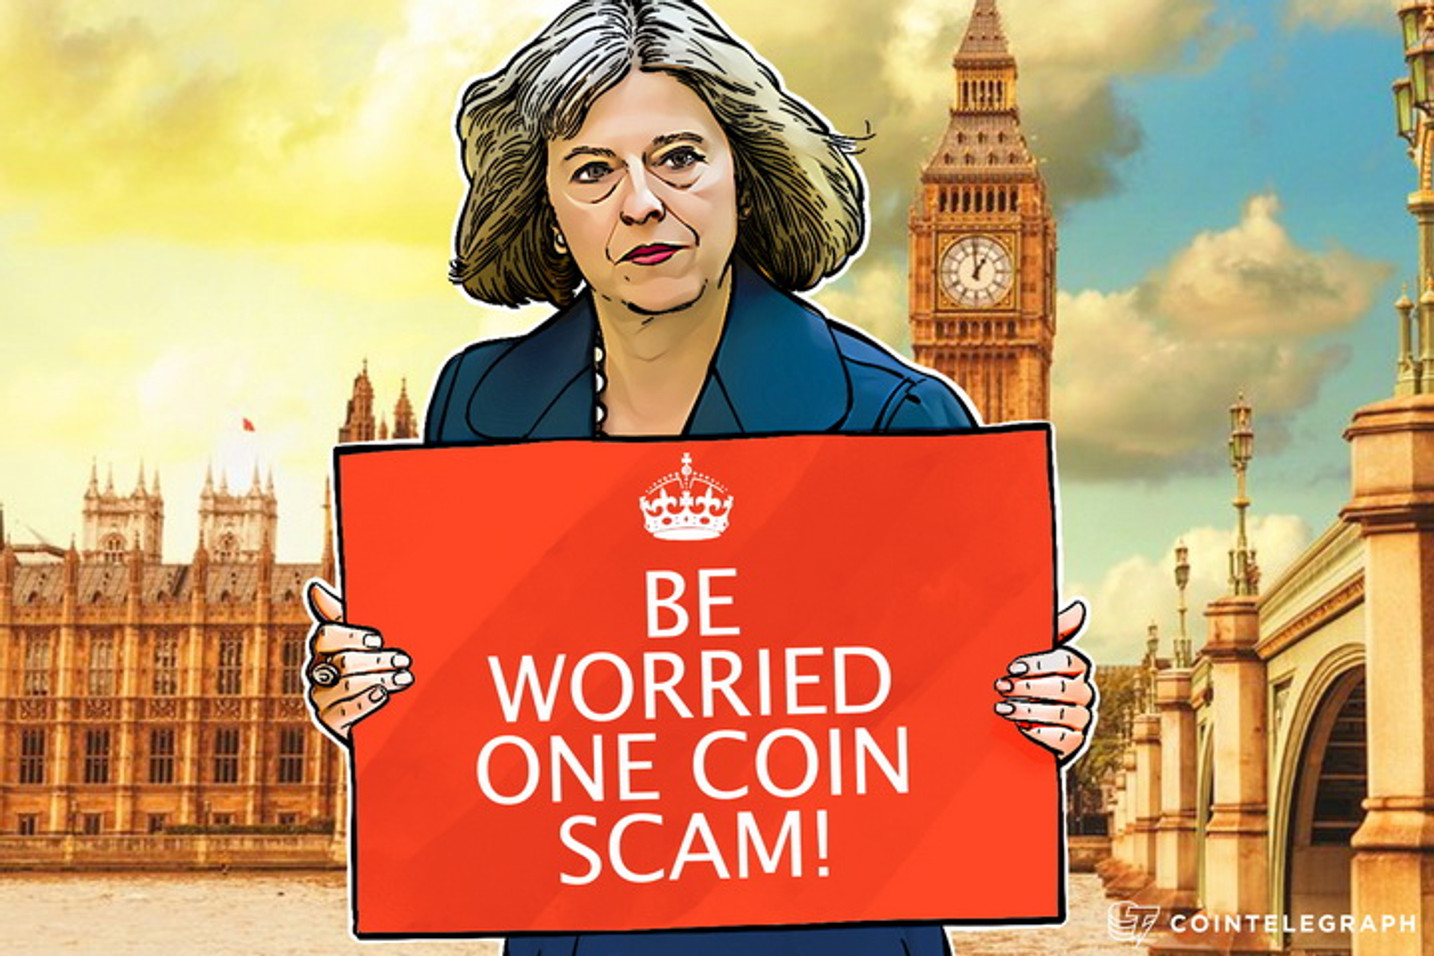 UK Financial Conduct Authority Issues Warning Against OneCoin